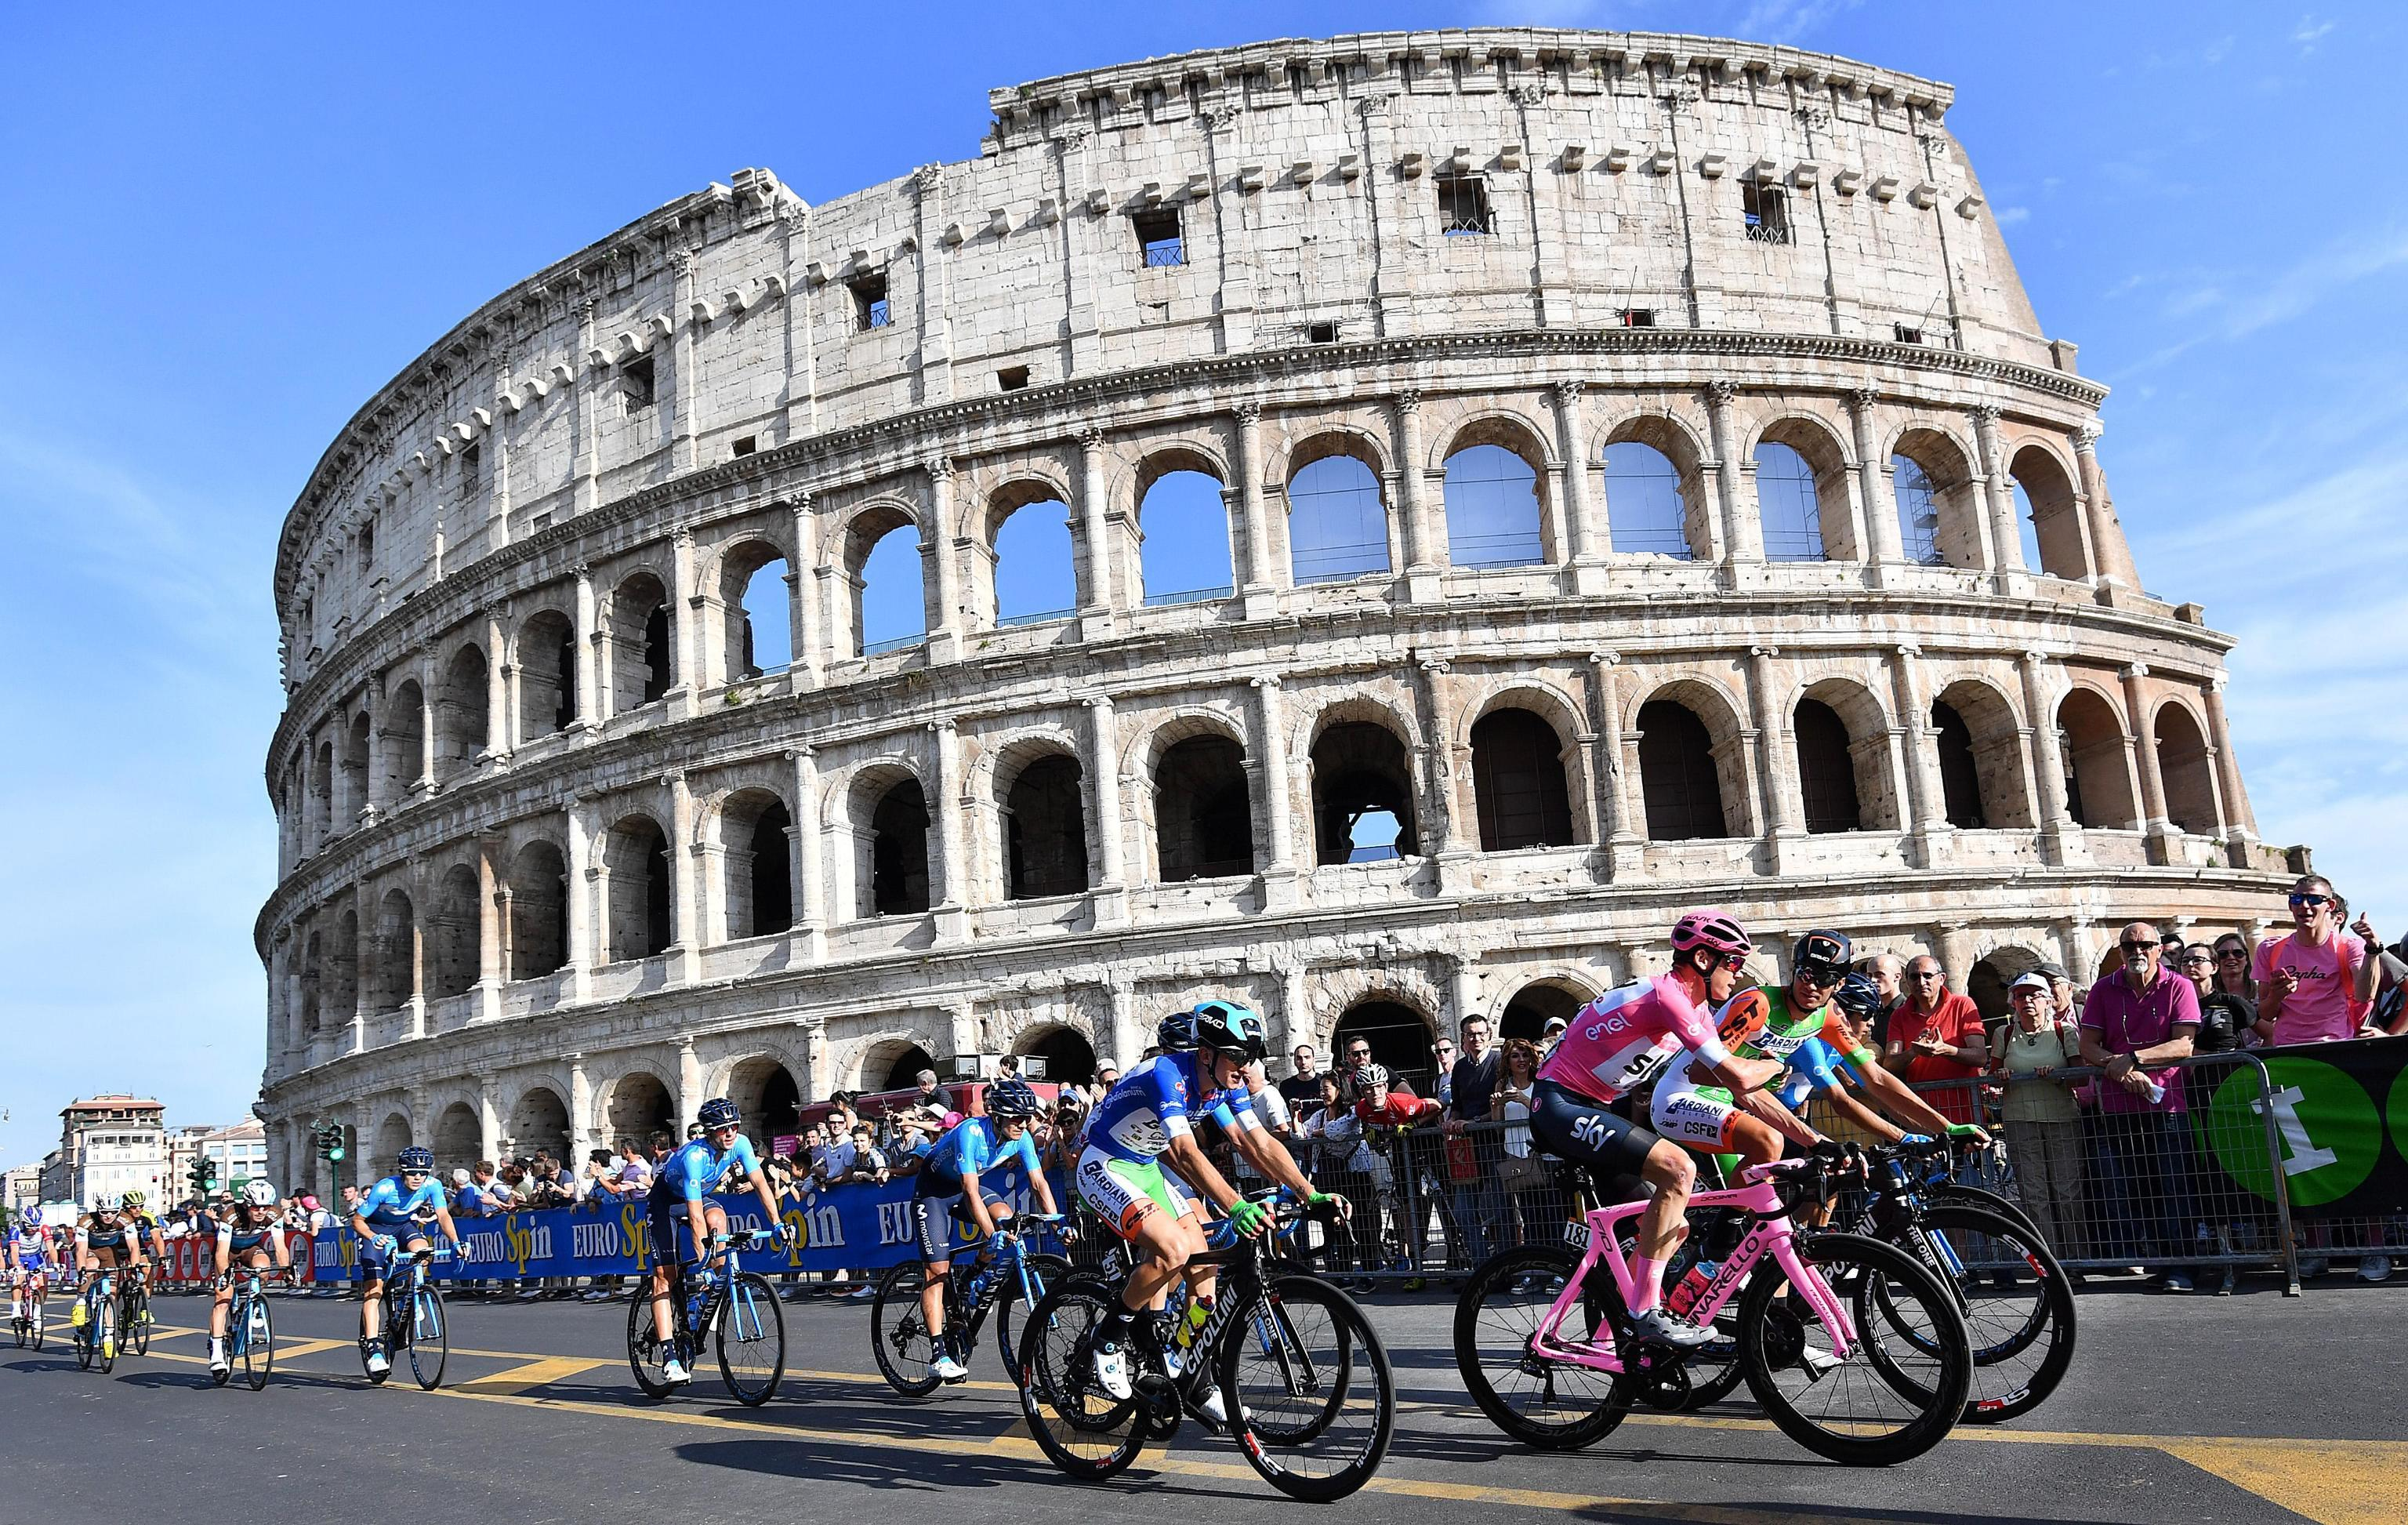 Froome rides past the Colosseum on the procession final stage of the Giro in Rome